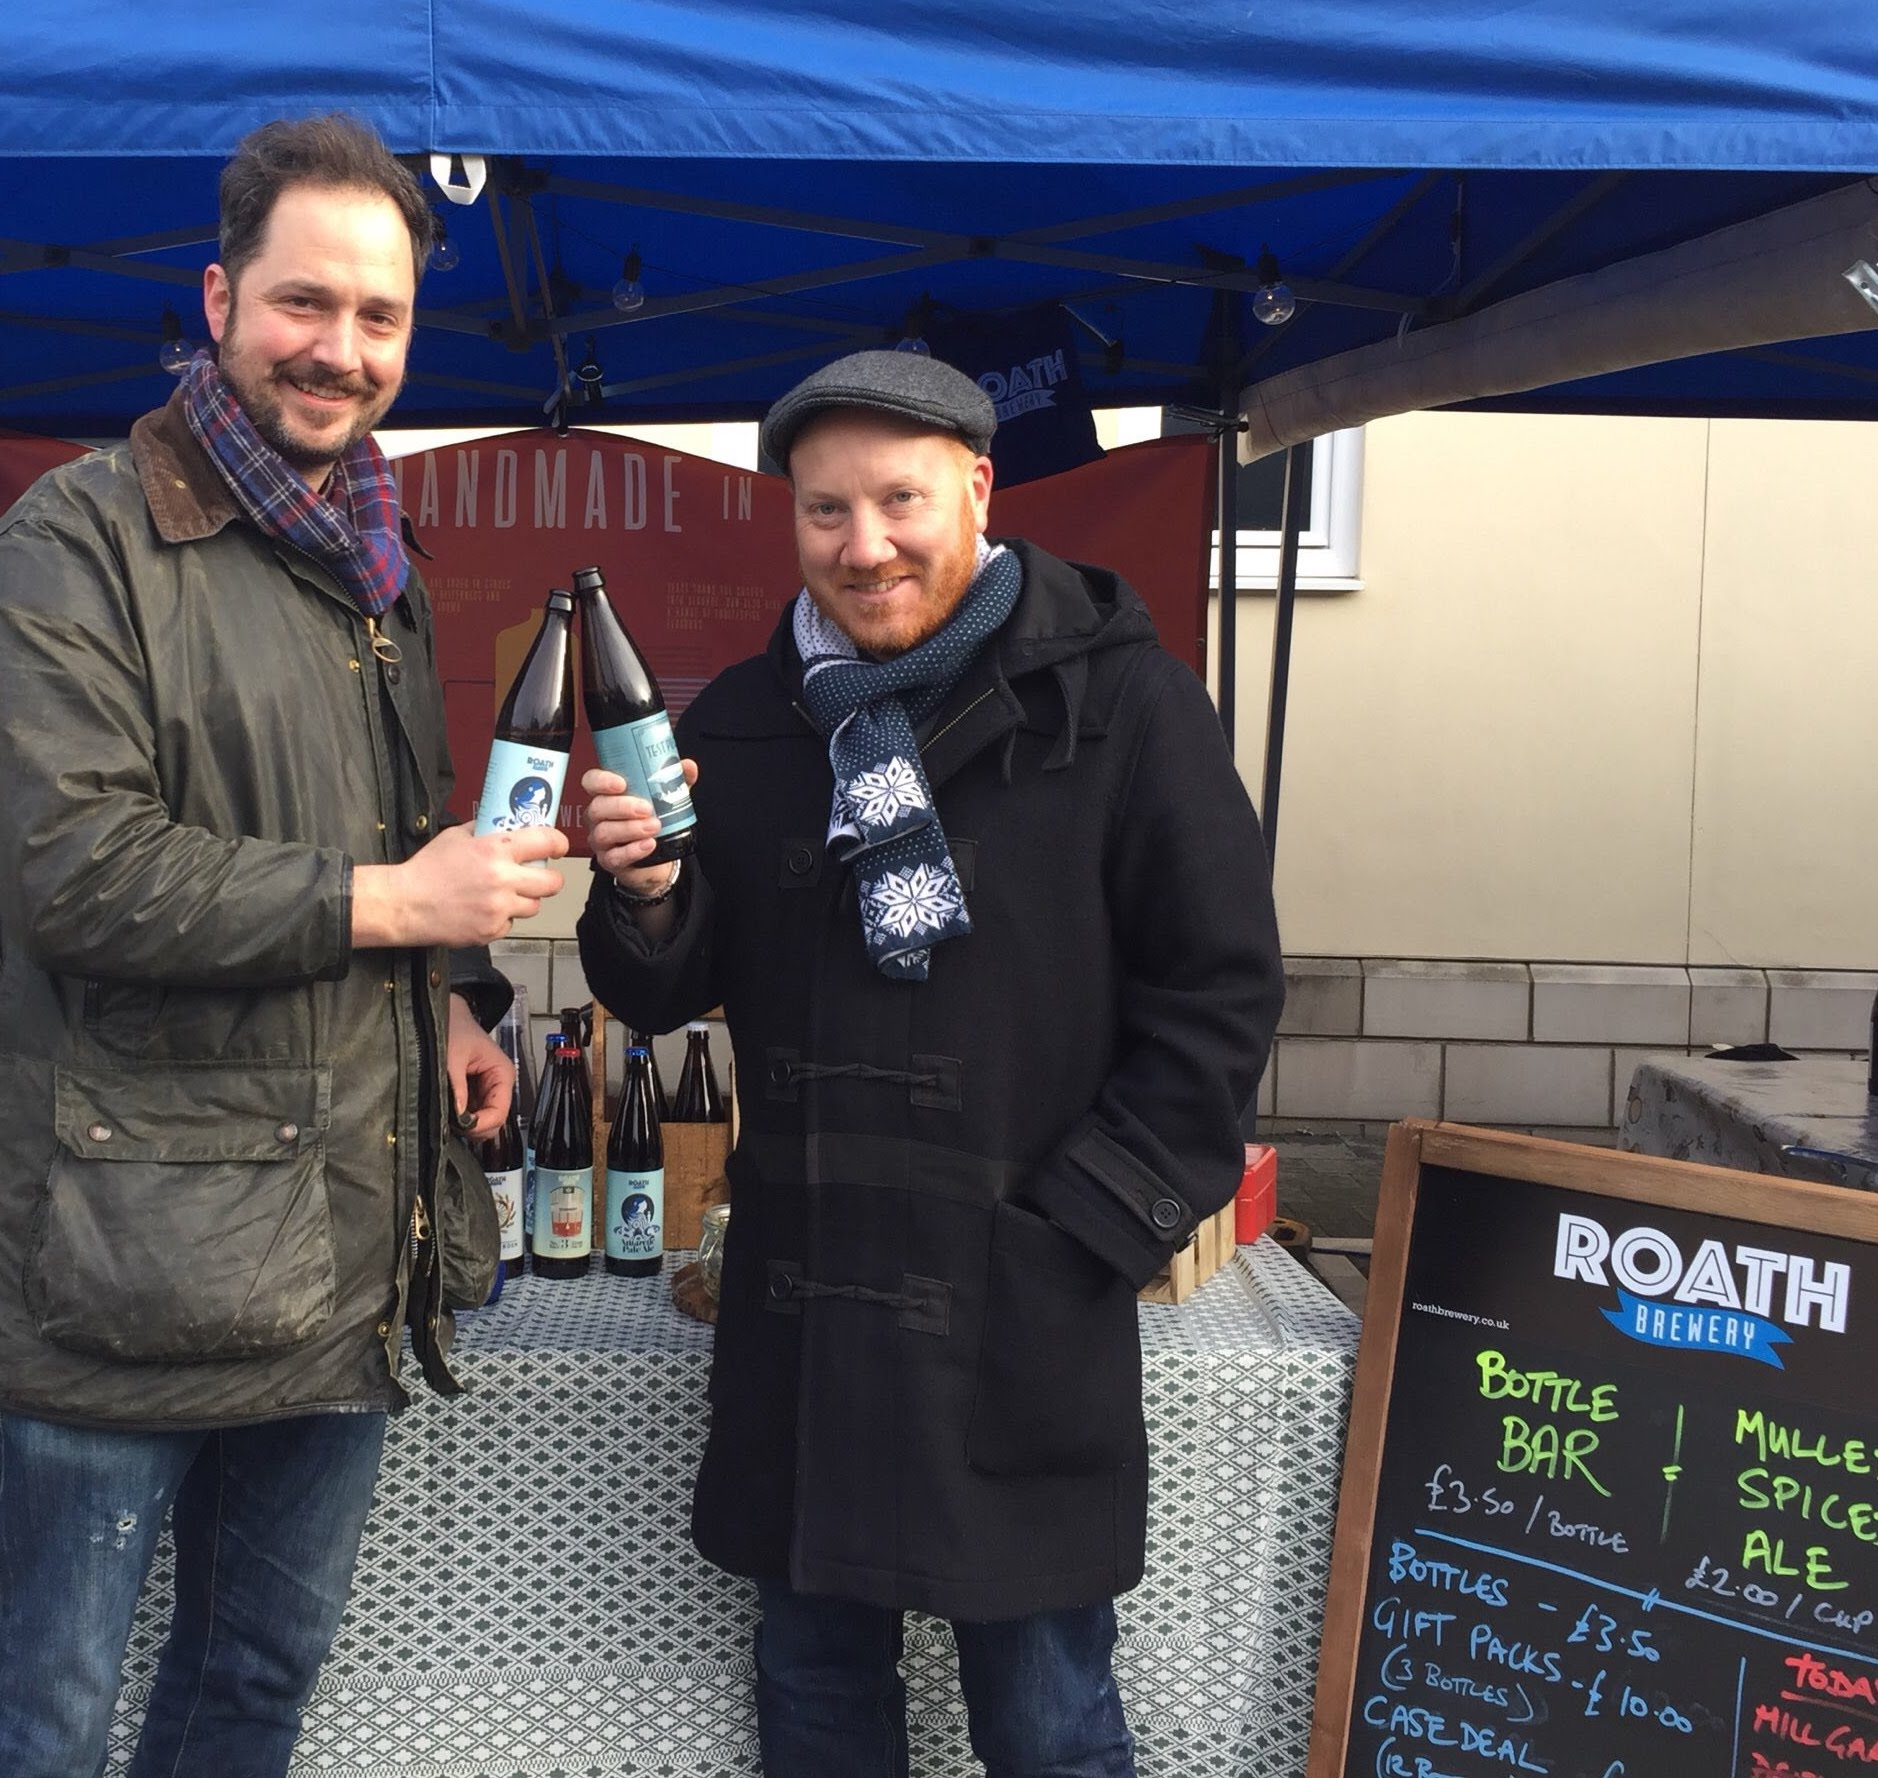 Matt and Tom selling Roath Brewery beers at Roath farmers market Cardiff